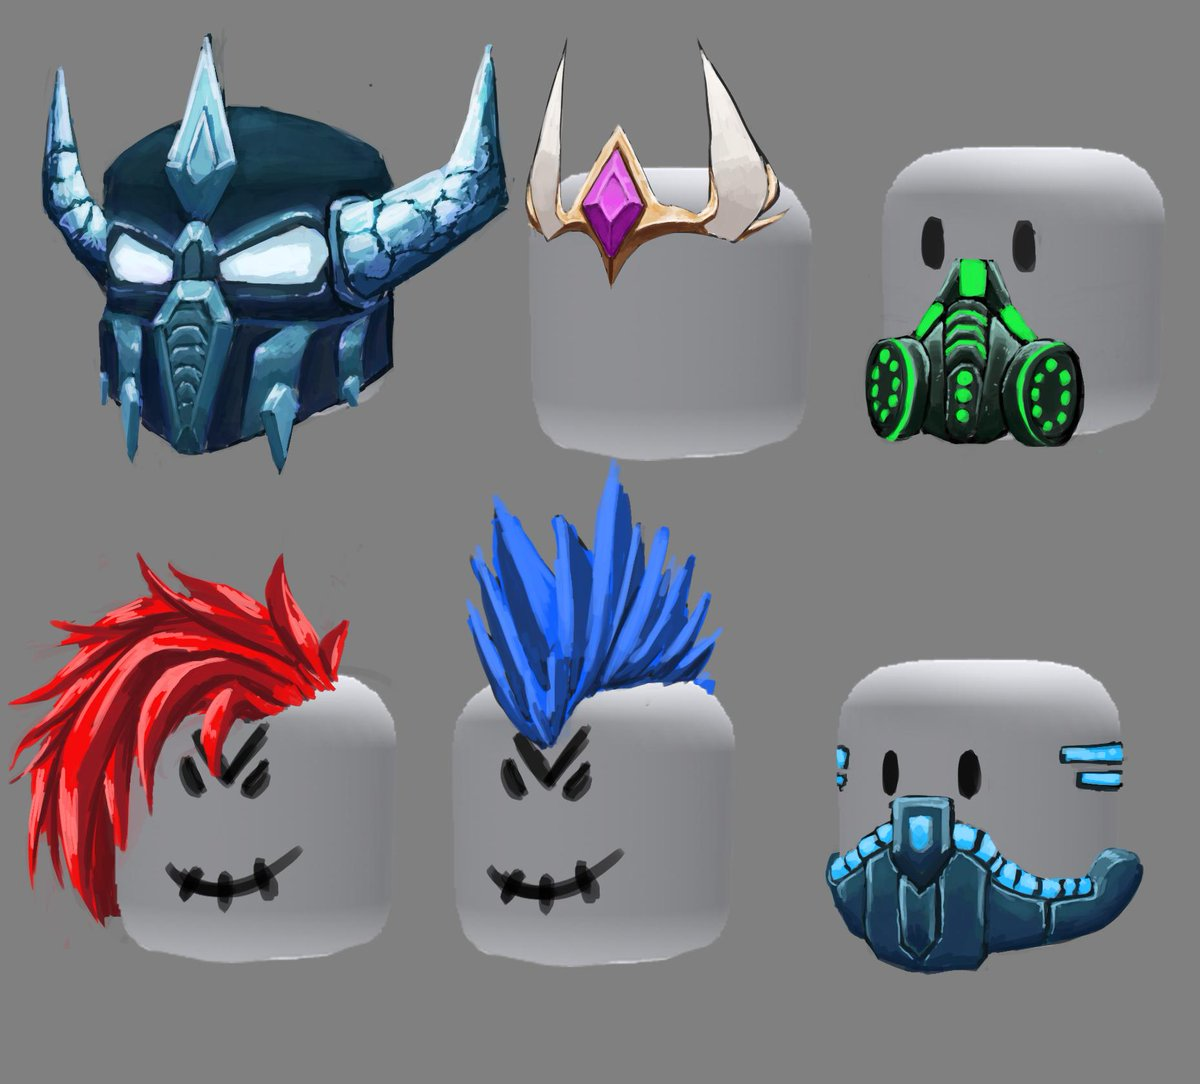 Idhau On Twitter Here Are A Couple Of The Other Ugc Concepts